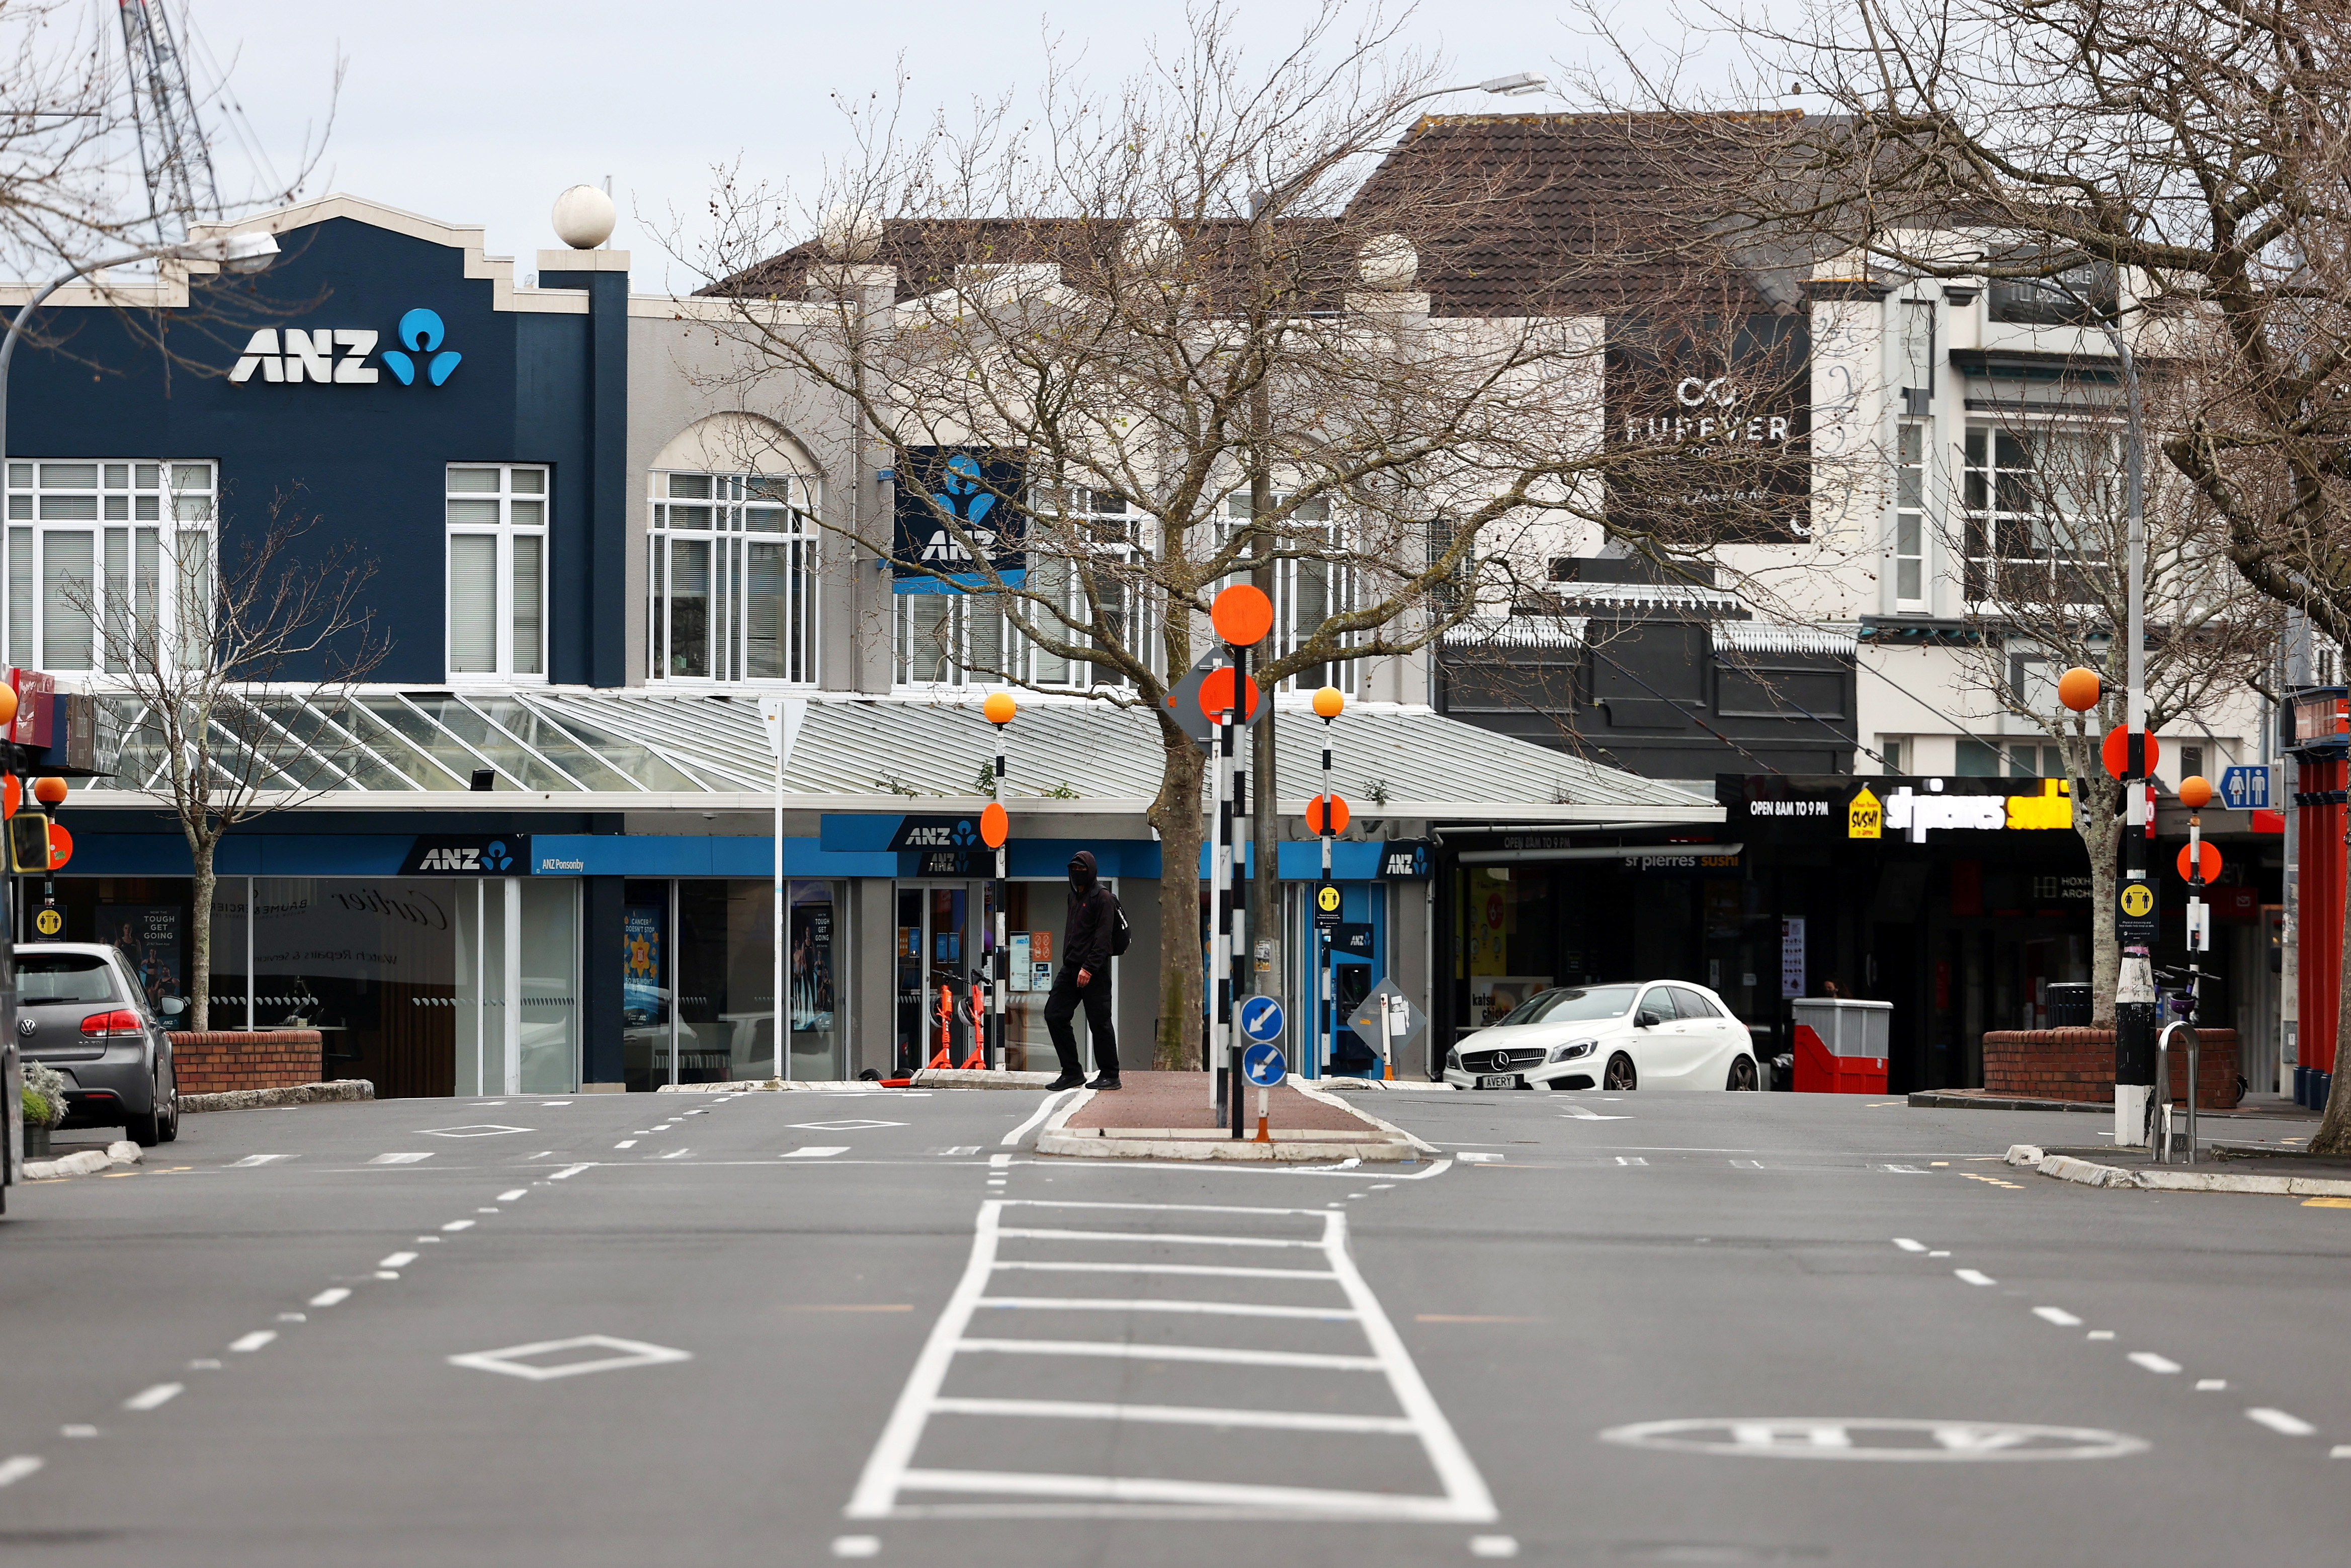 A normally busy road is deserted during a lockdown to curb the spread of a coronavirus disease (COVID-19) outbreak in Auckland, New Zealand, August 26, 2021.  REUTERS/Fiona Goodall